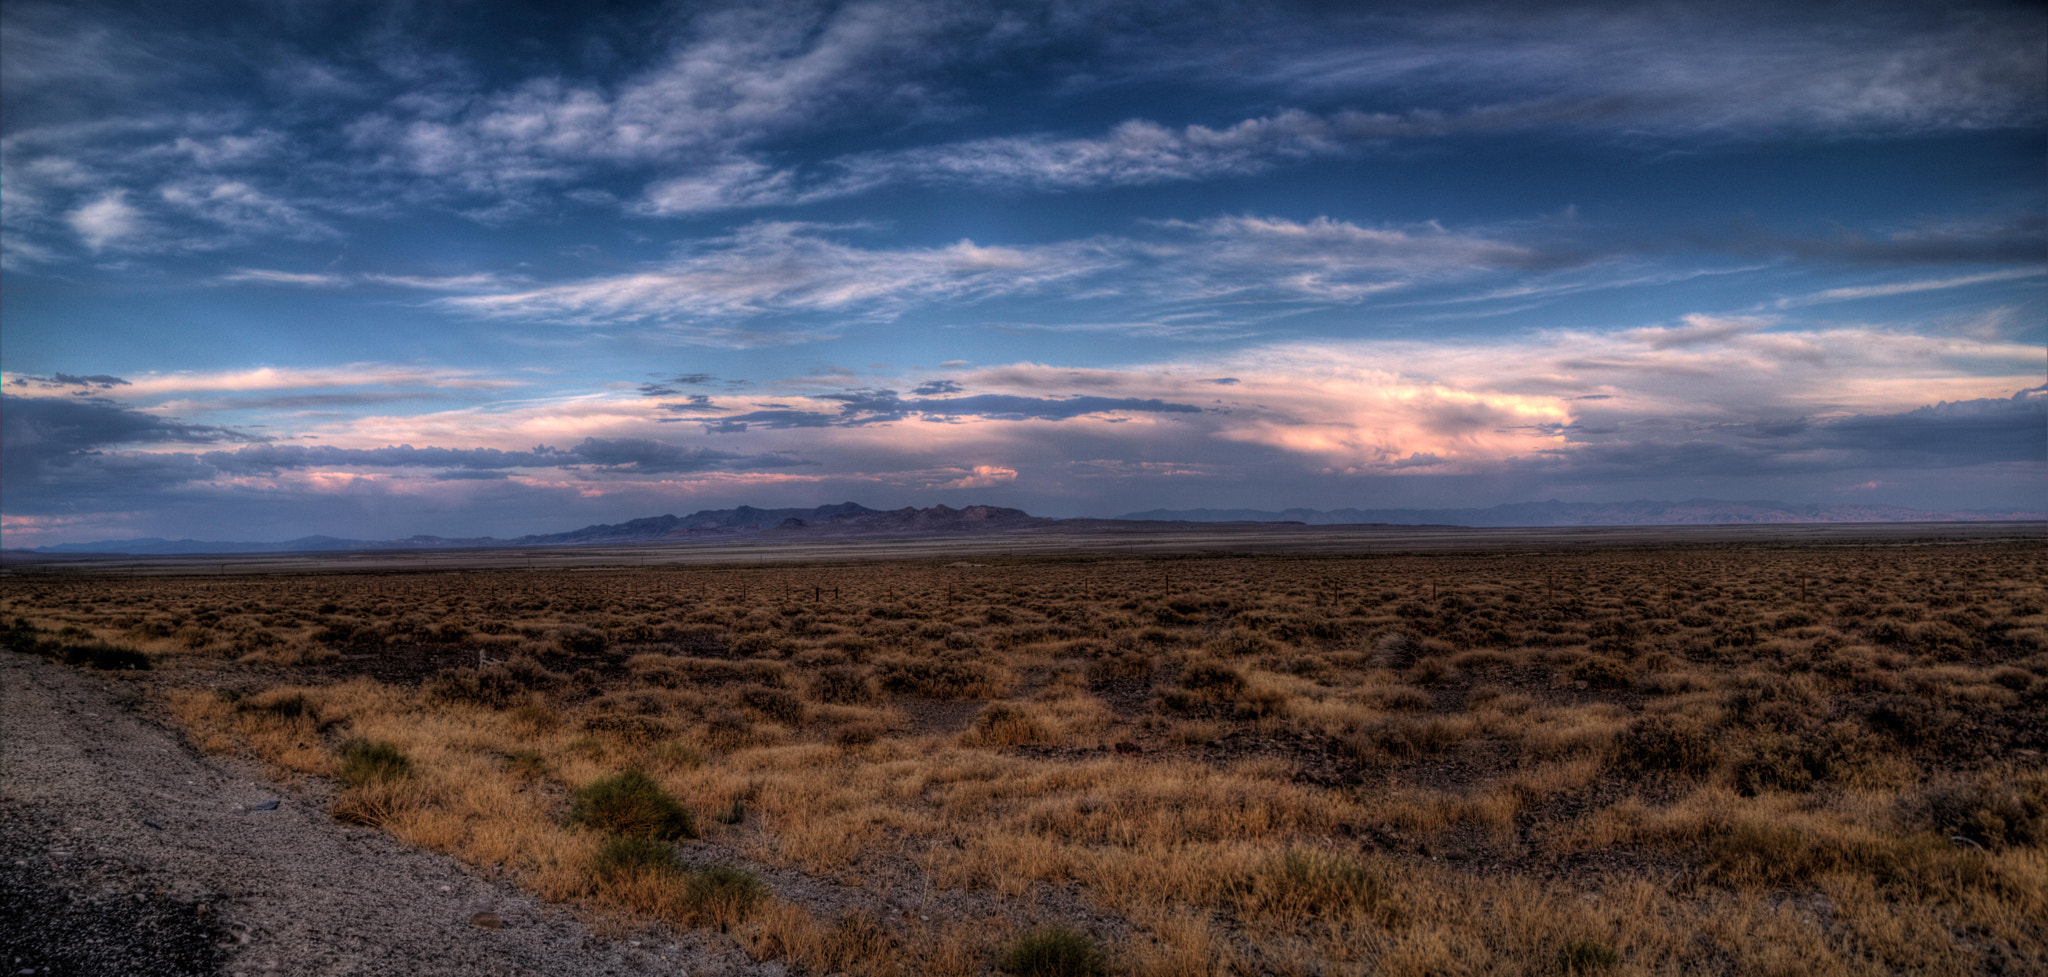 Photograph Nevada Sunset by Jon Weiland on 500px